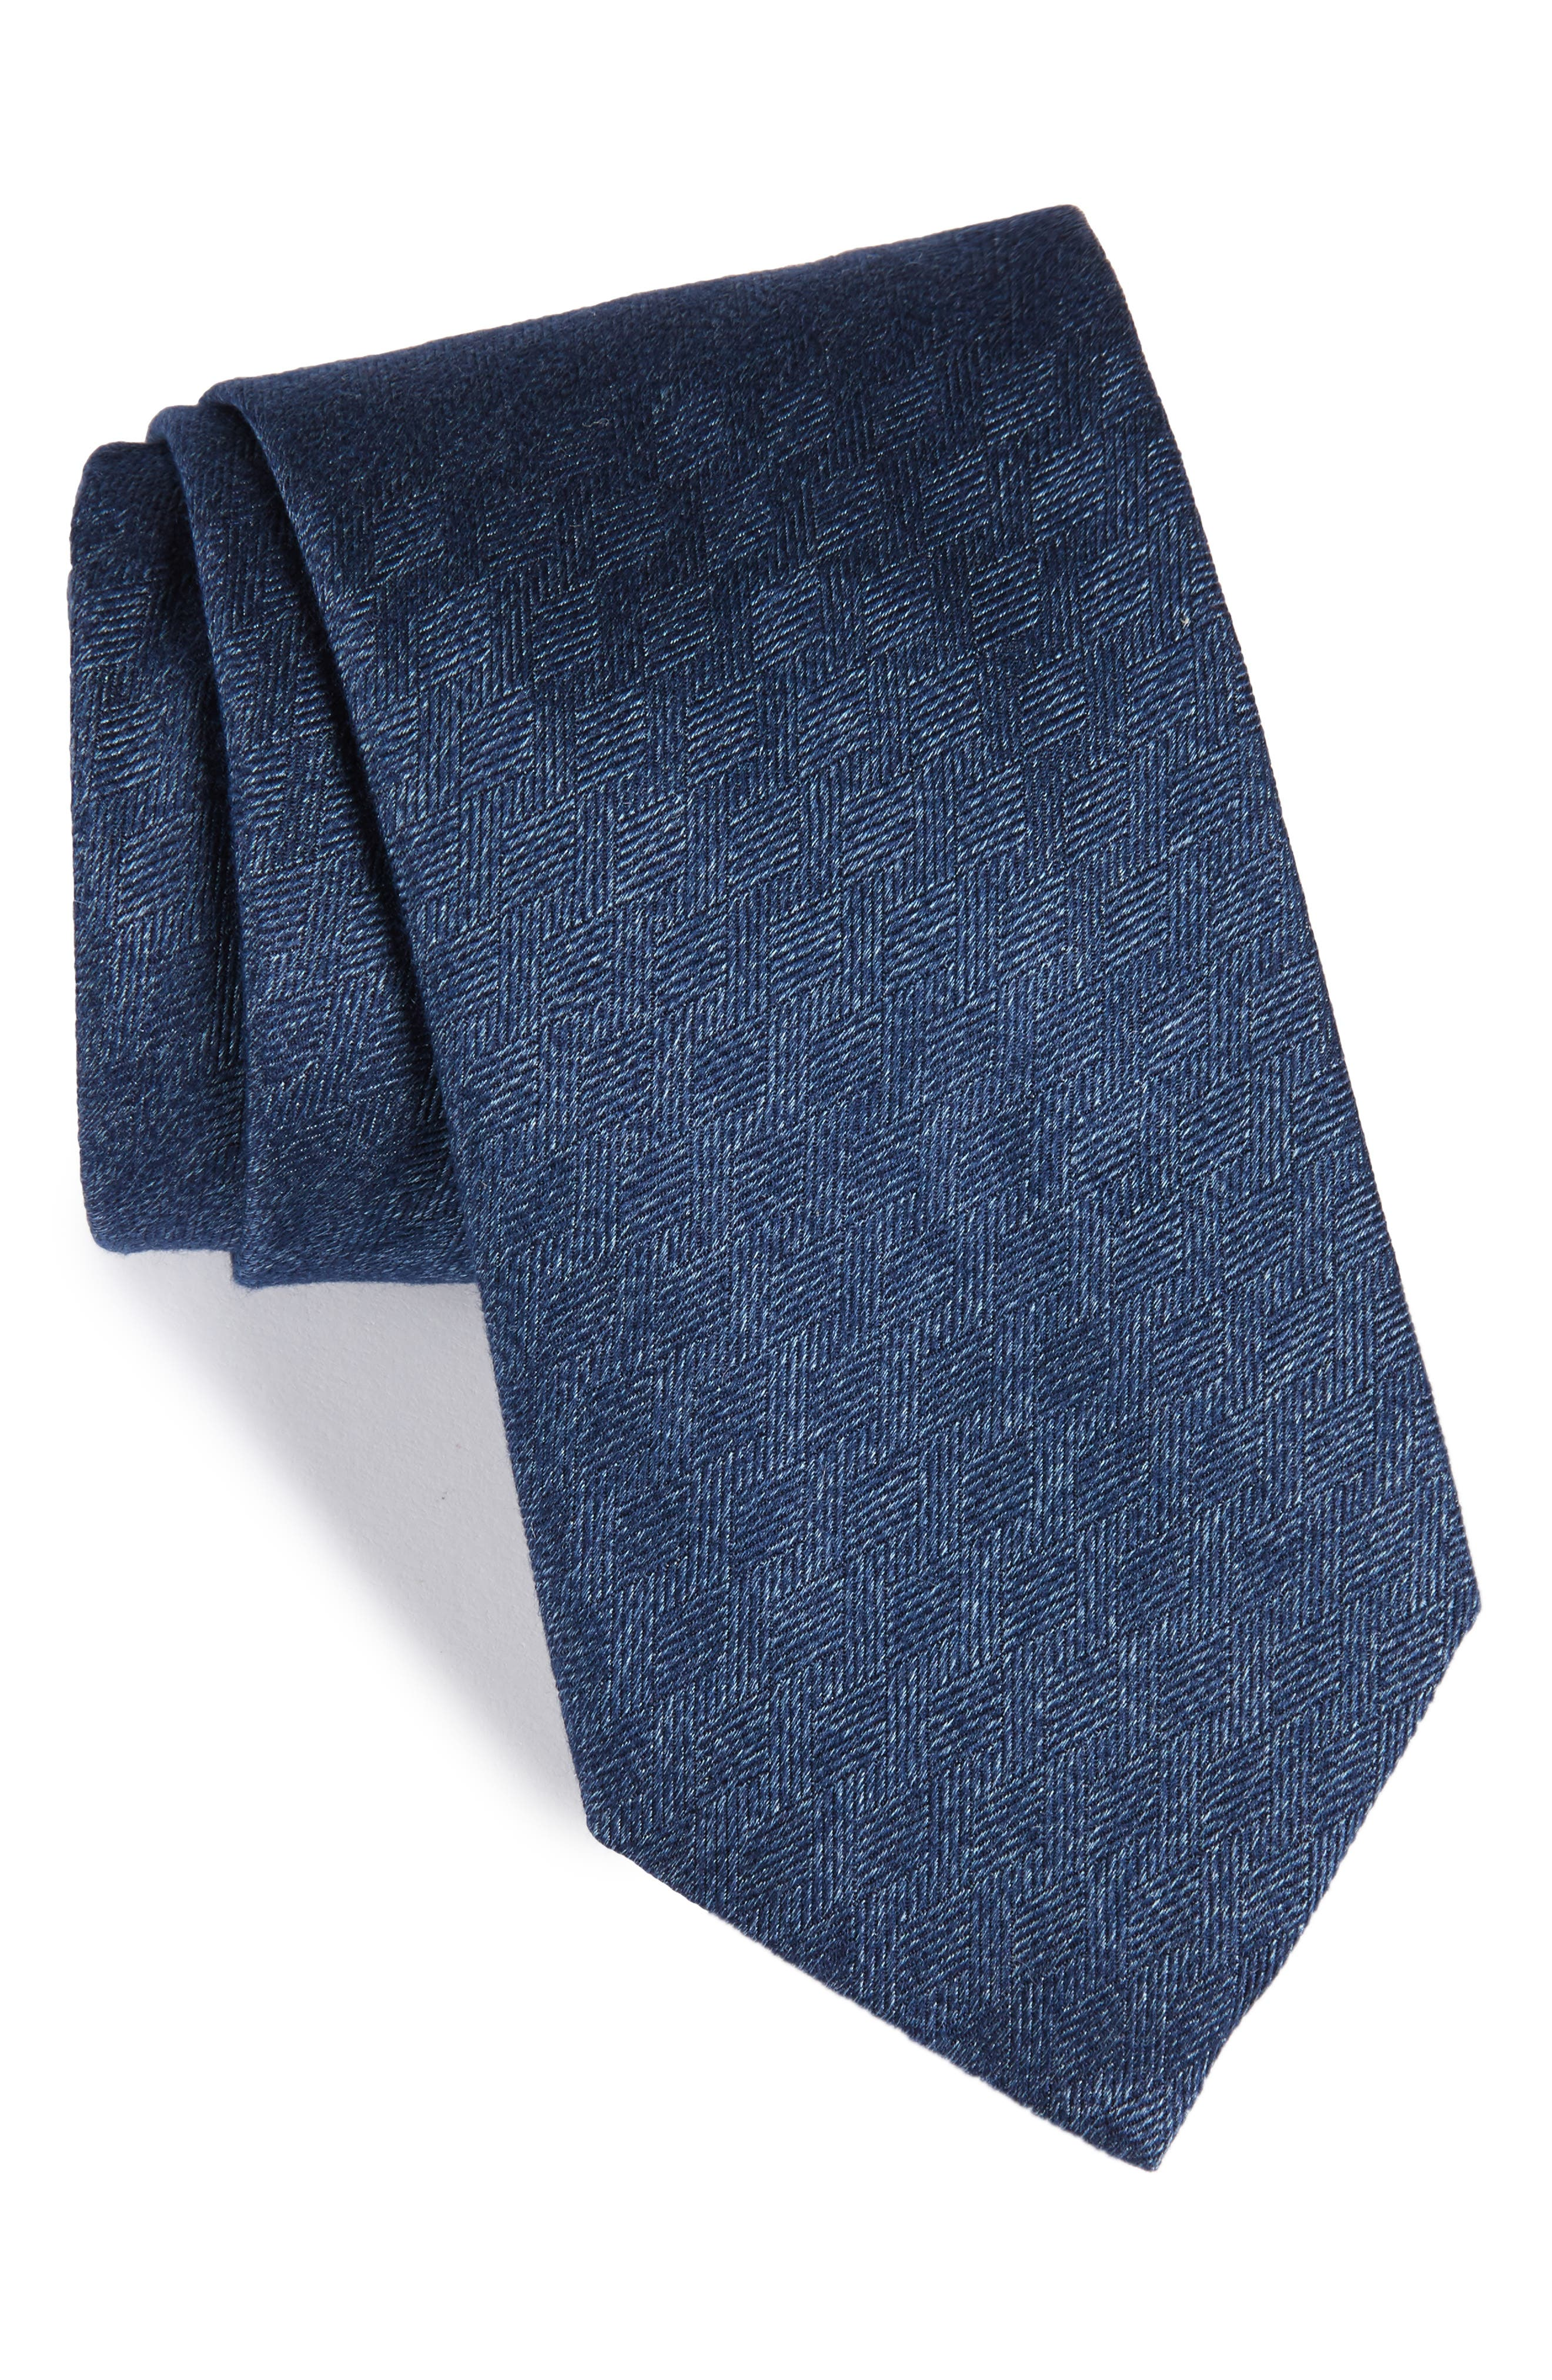 Alternate Image 1 Selected - Brioni Solid Silk Tie